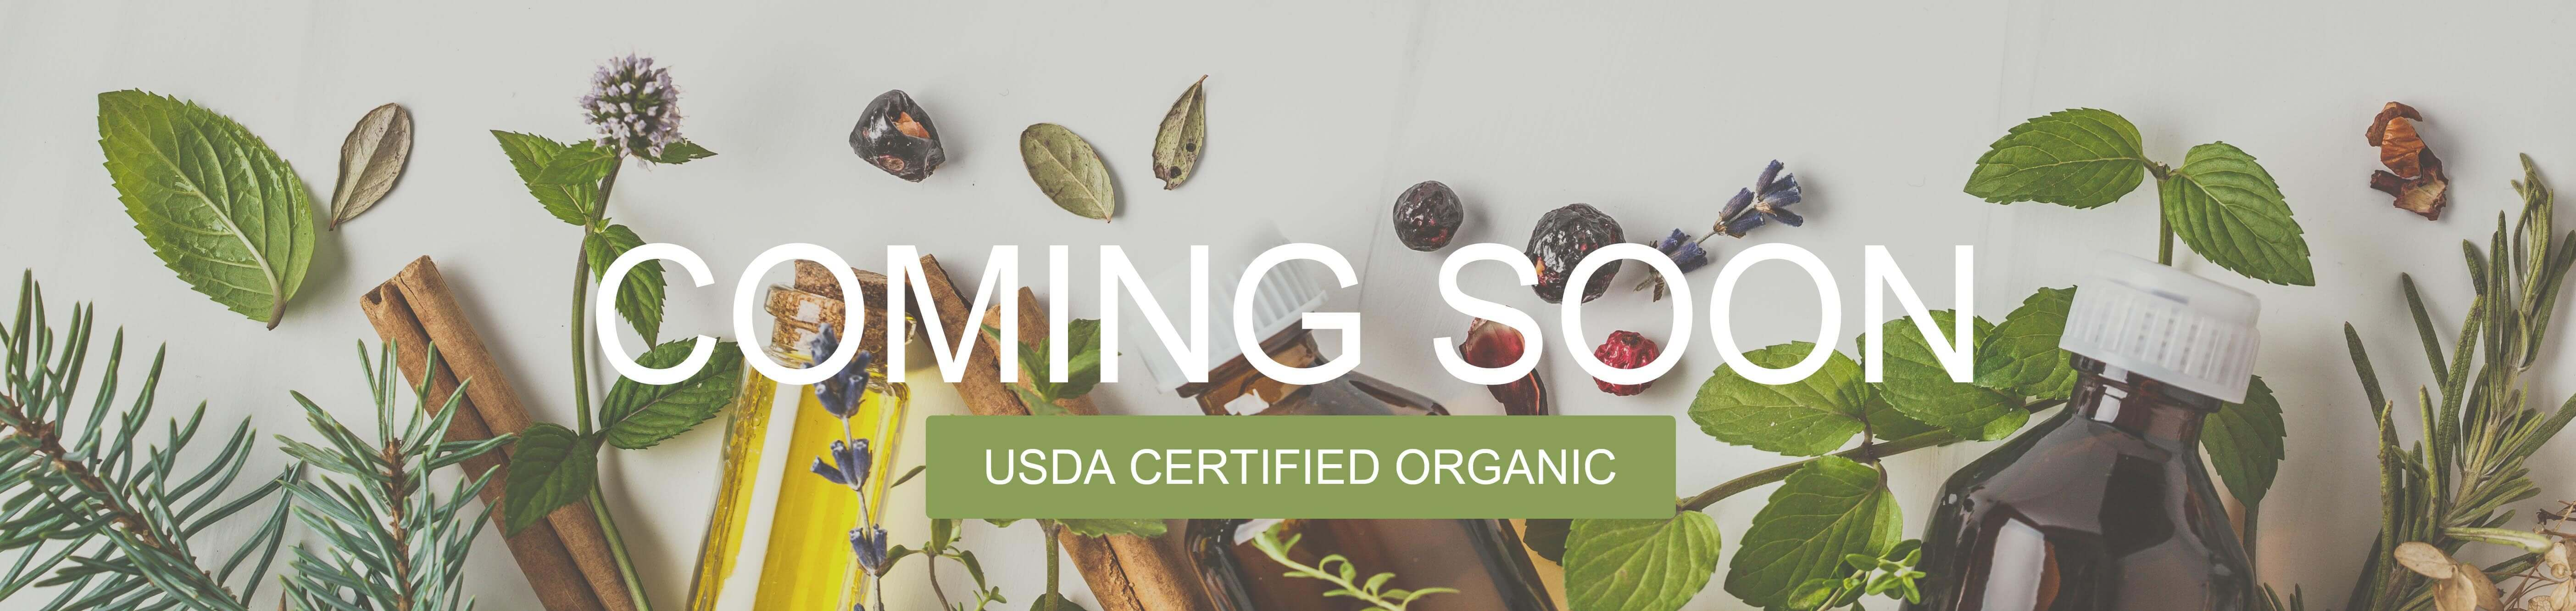 Cocojojo USDA Certified Organic Products